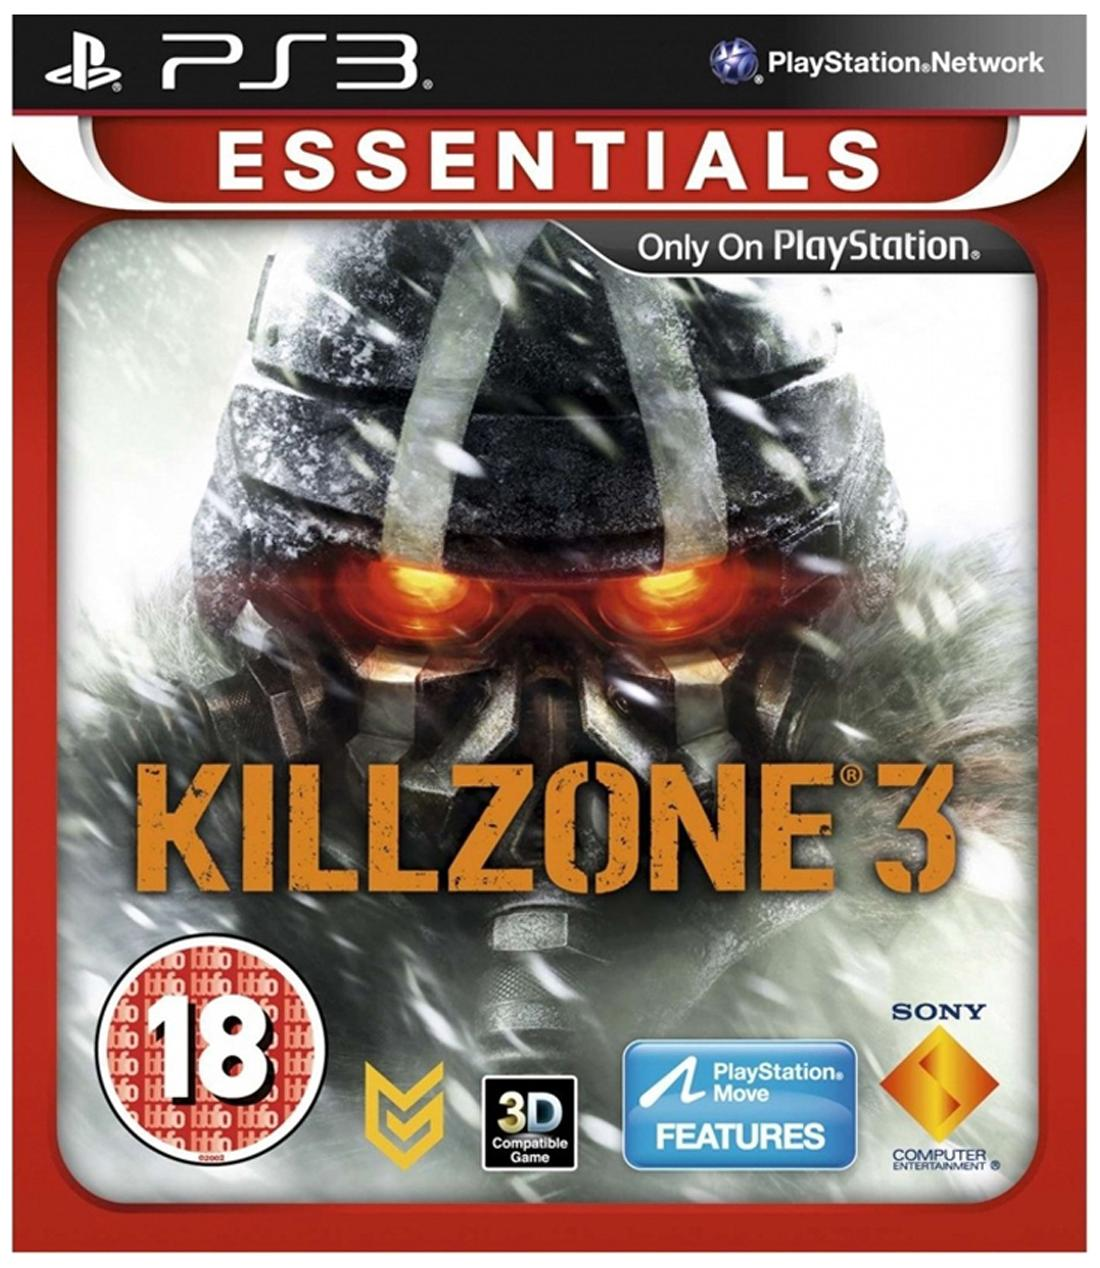 Killzone 3 Essentials (Standard Edition) (For PlayStation 3)